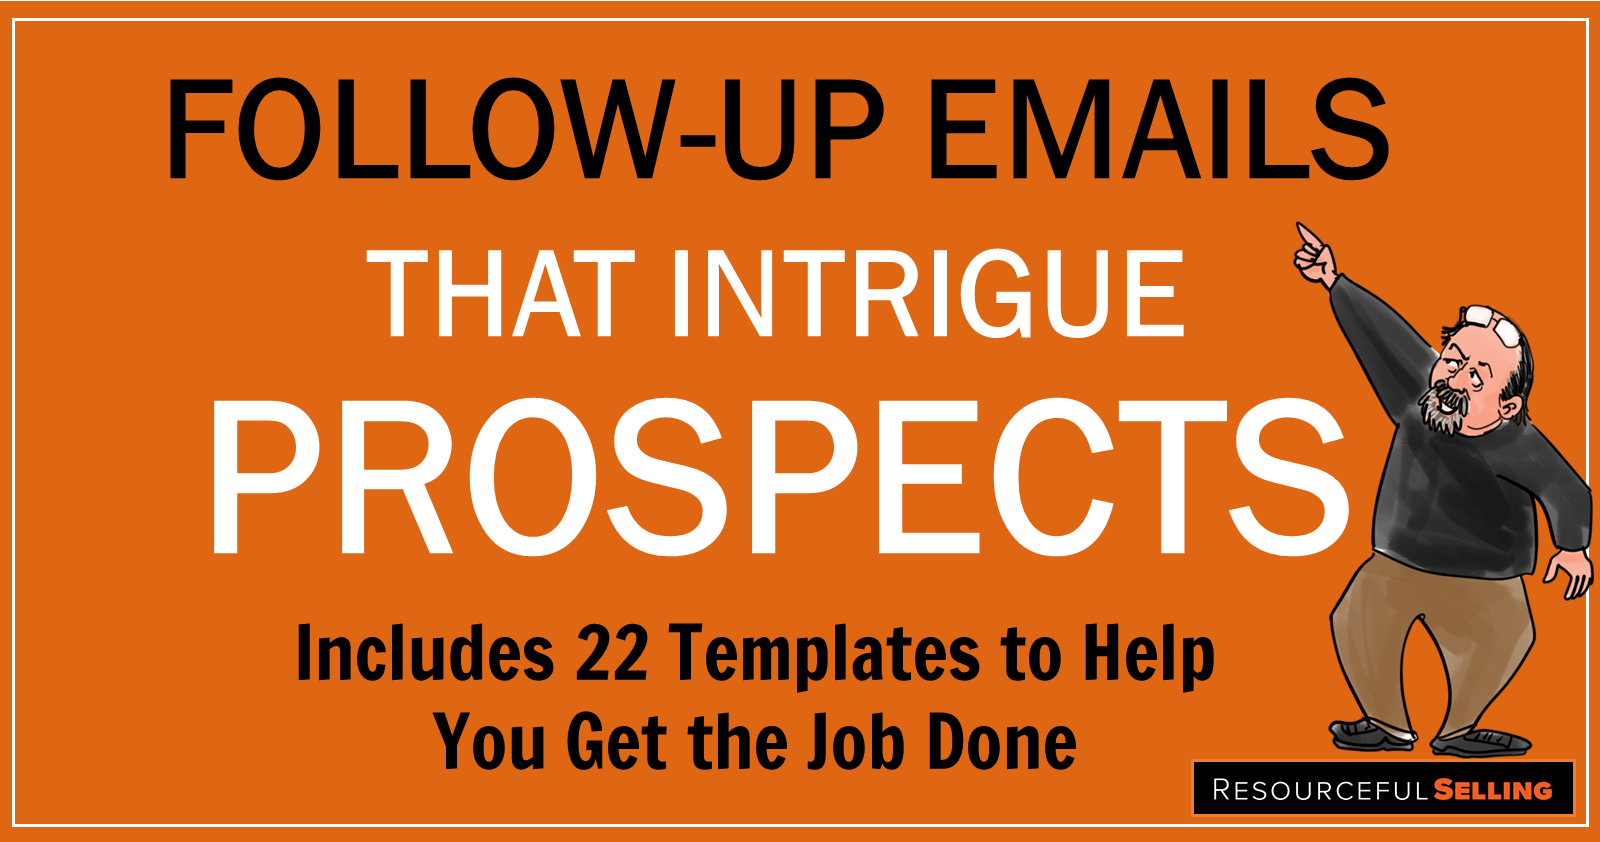 Build your prospects' trust and ultimately close the deal by using the professional email templates in this article. Follow Up Emails That Intrigue Prospects And 22 Templates To Help